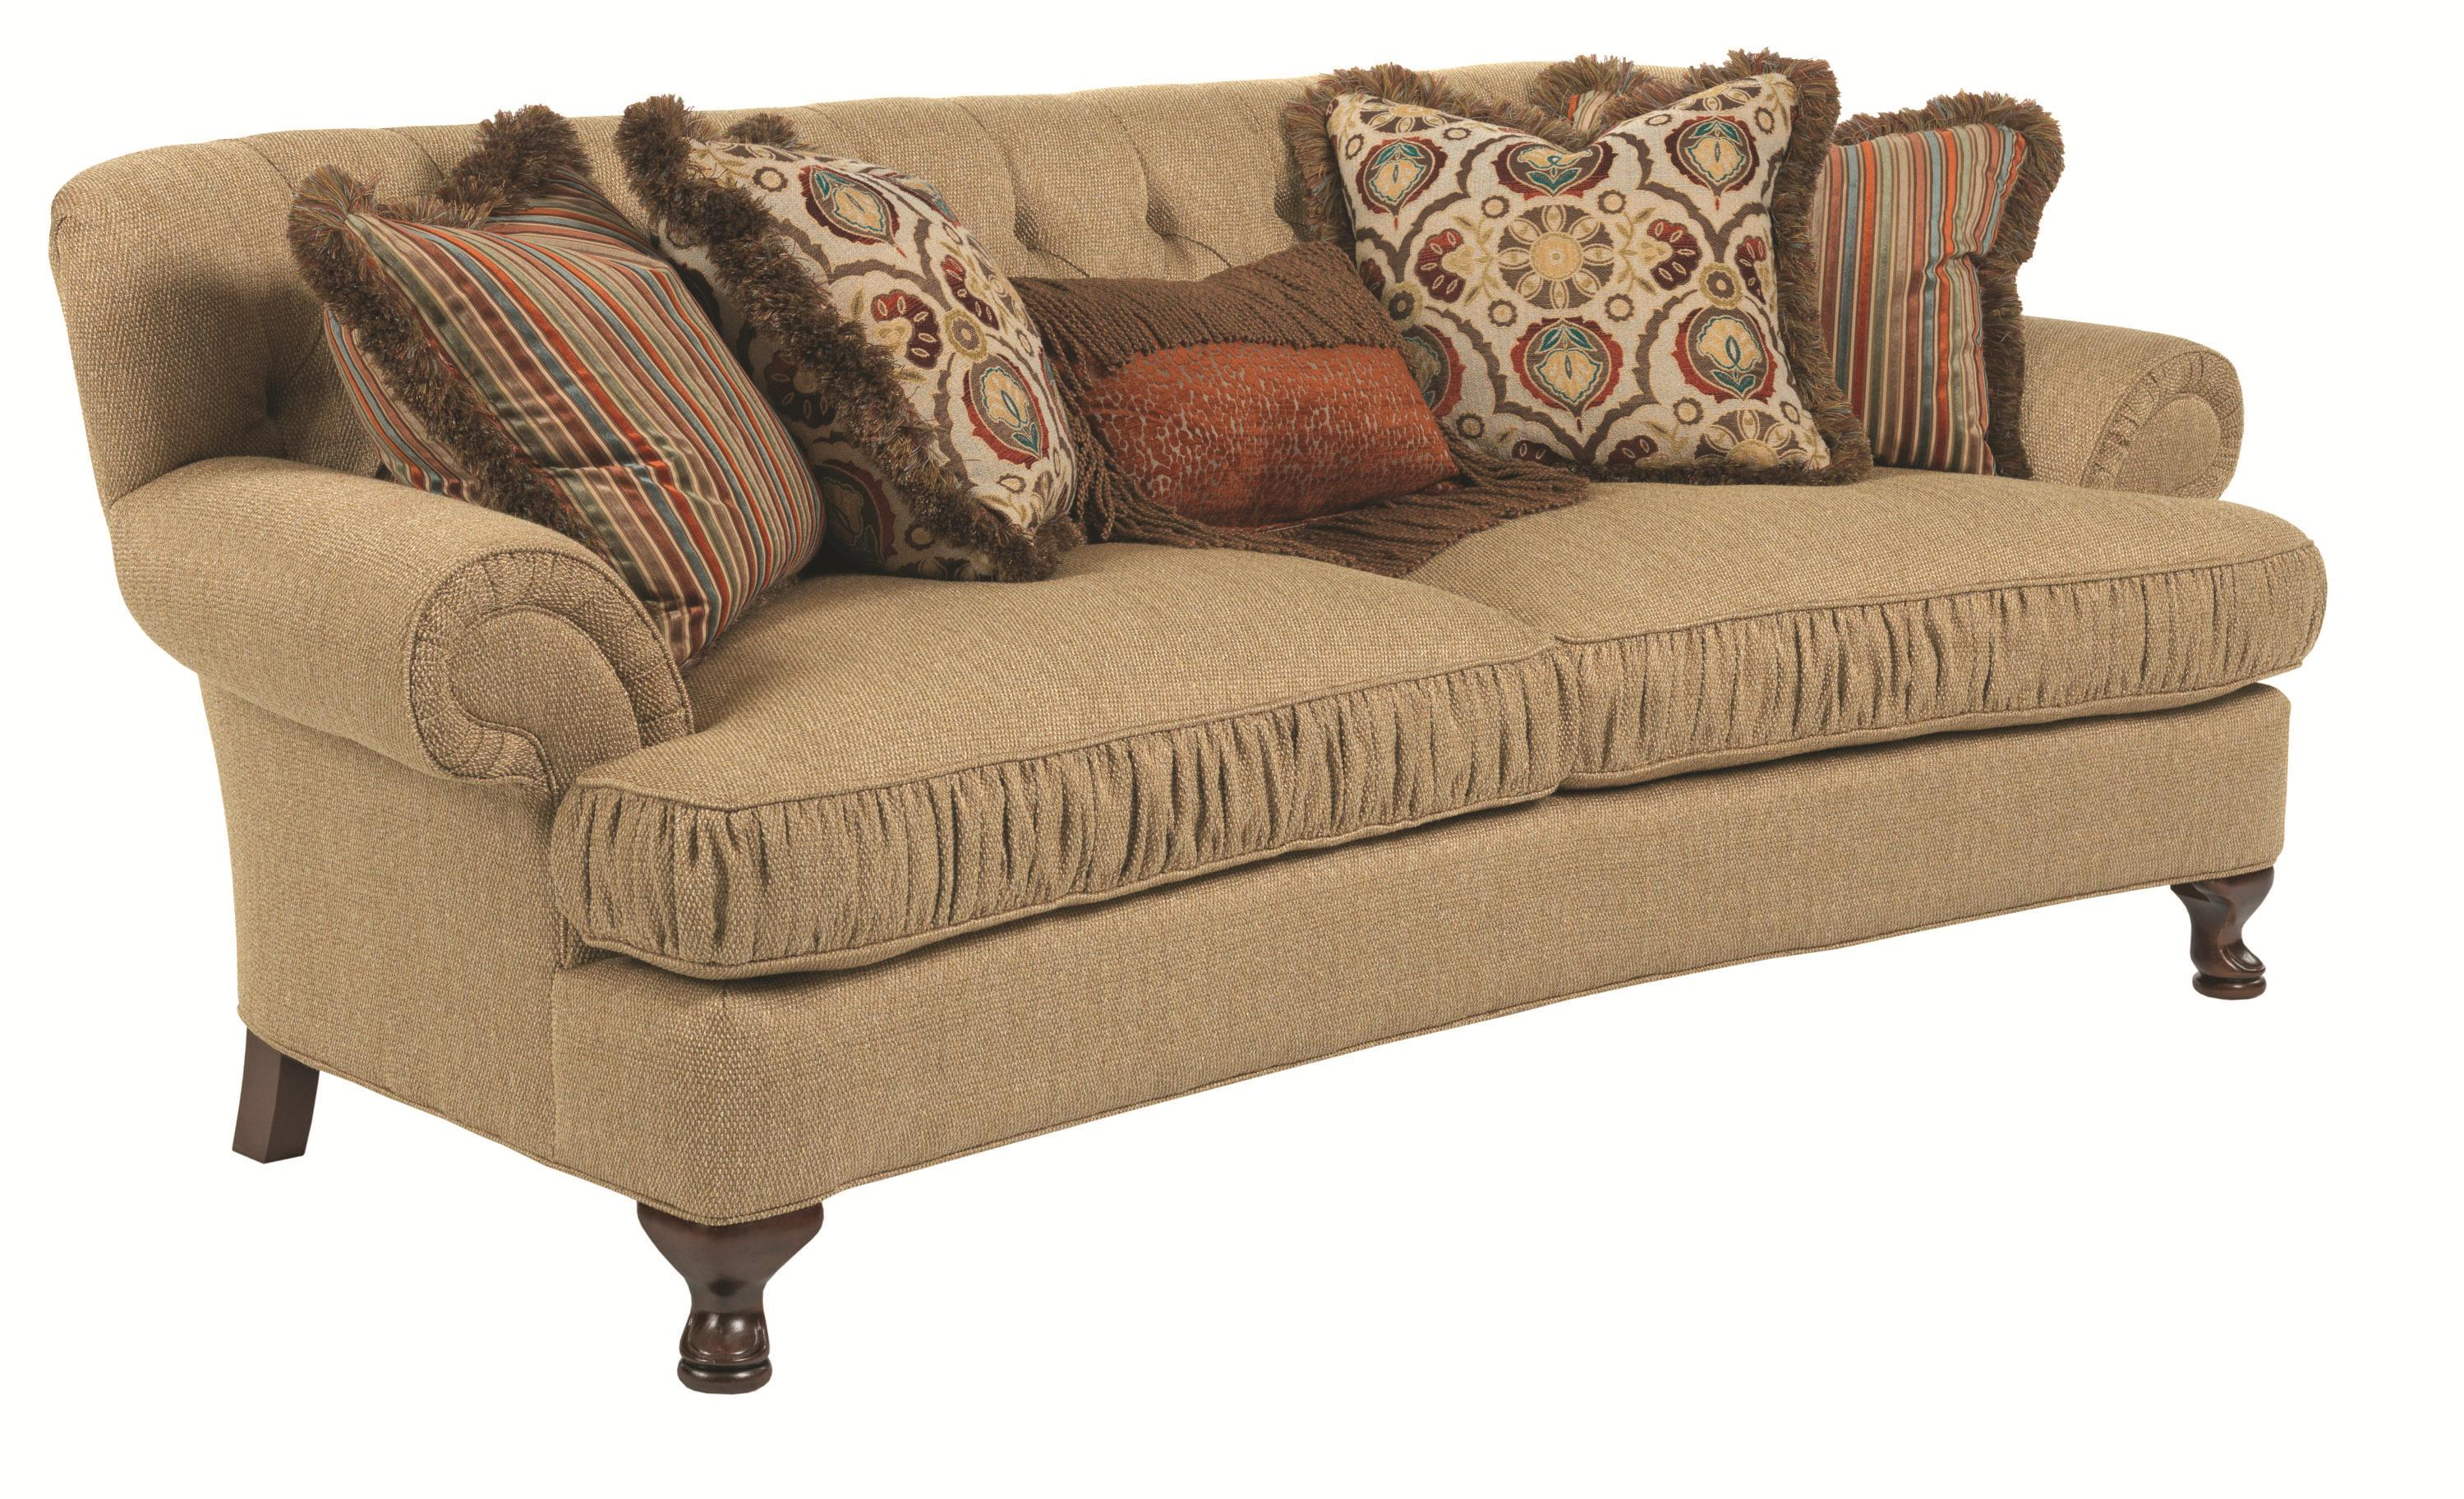 traditional conversation sofa with ruched cushions and